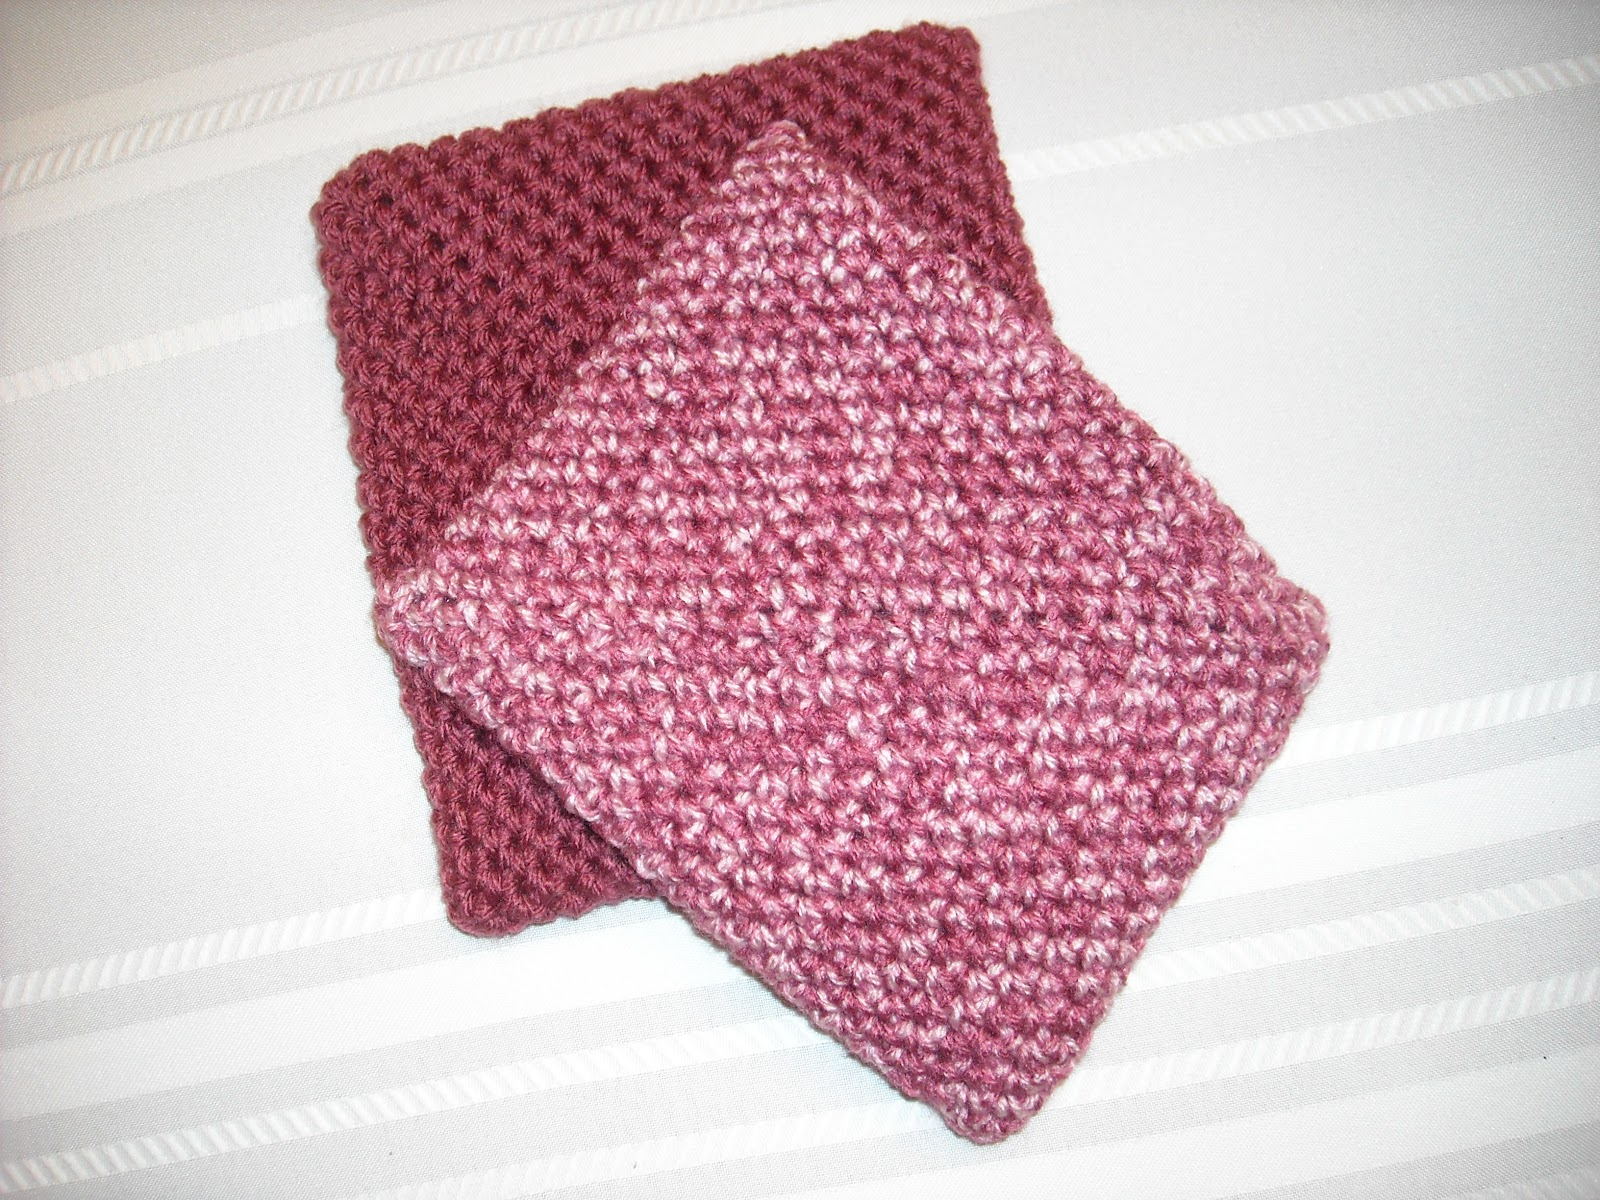 Crocheting Hotpads : MATERIALS: Yarn color of your choice.